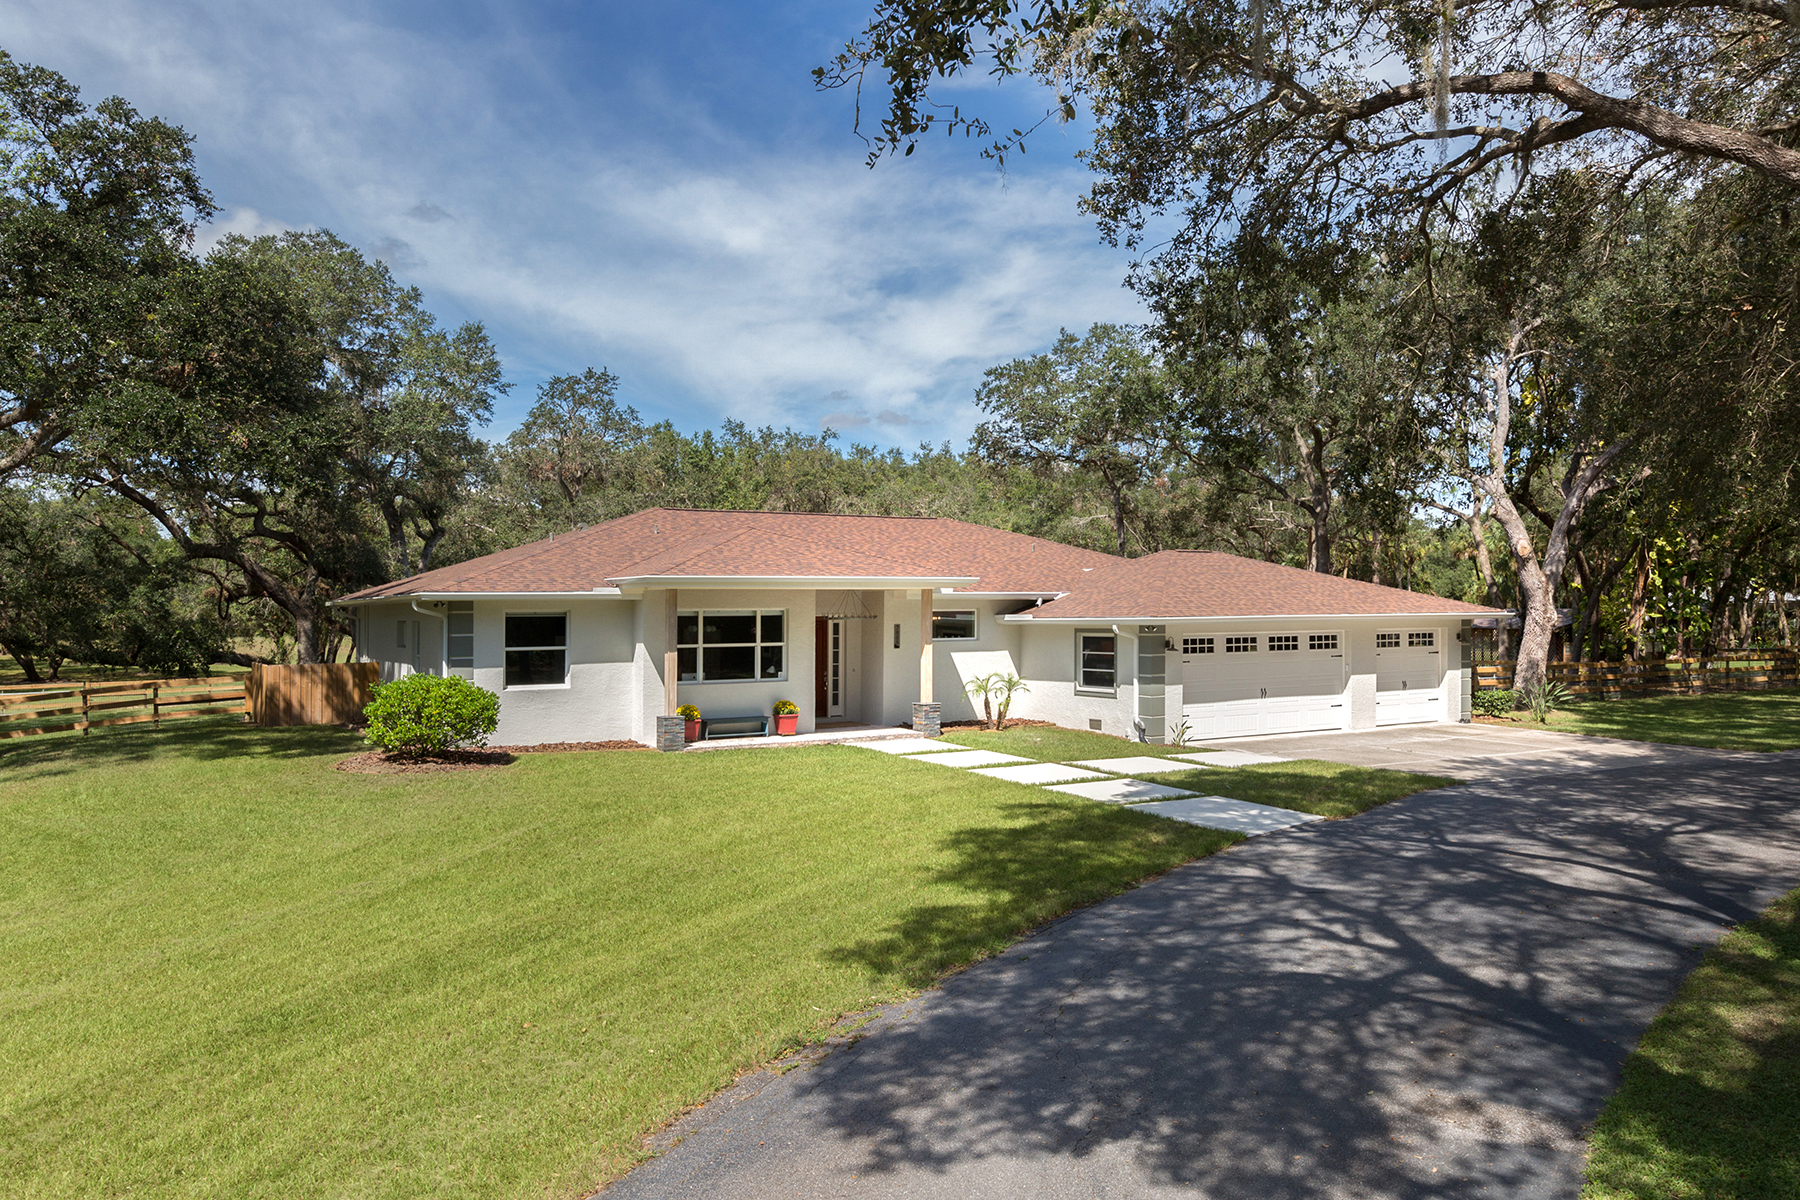 Single Family Home for Sale at SADDLE CREEK 7868 Saddle Creek Trl, Sarasota, Florida 34241 United States